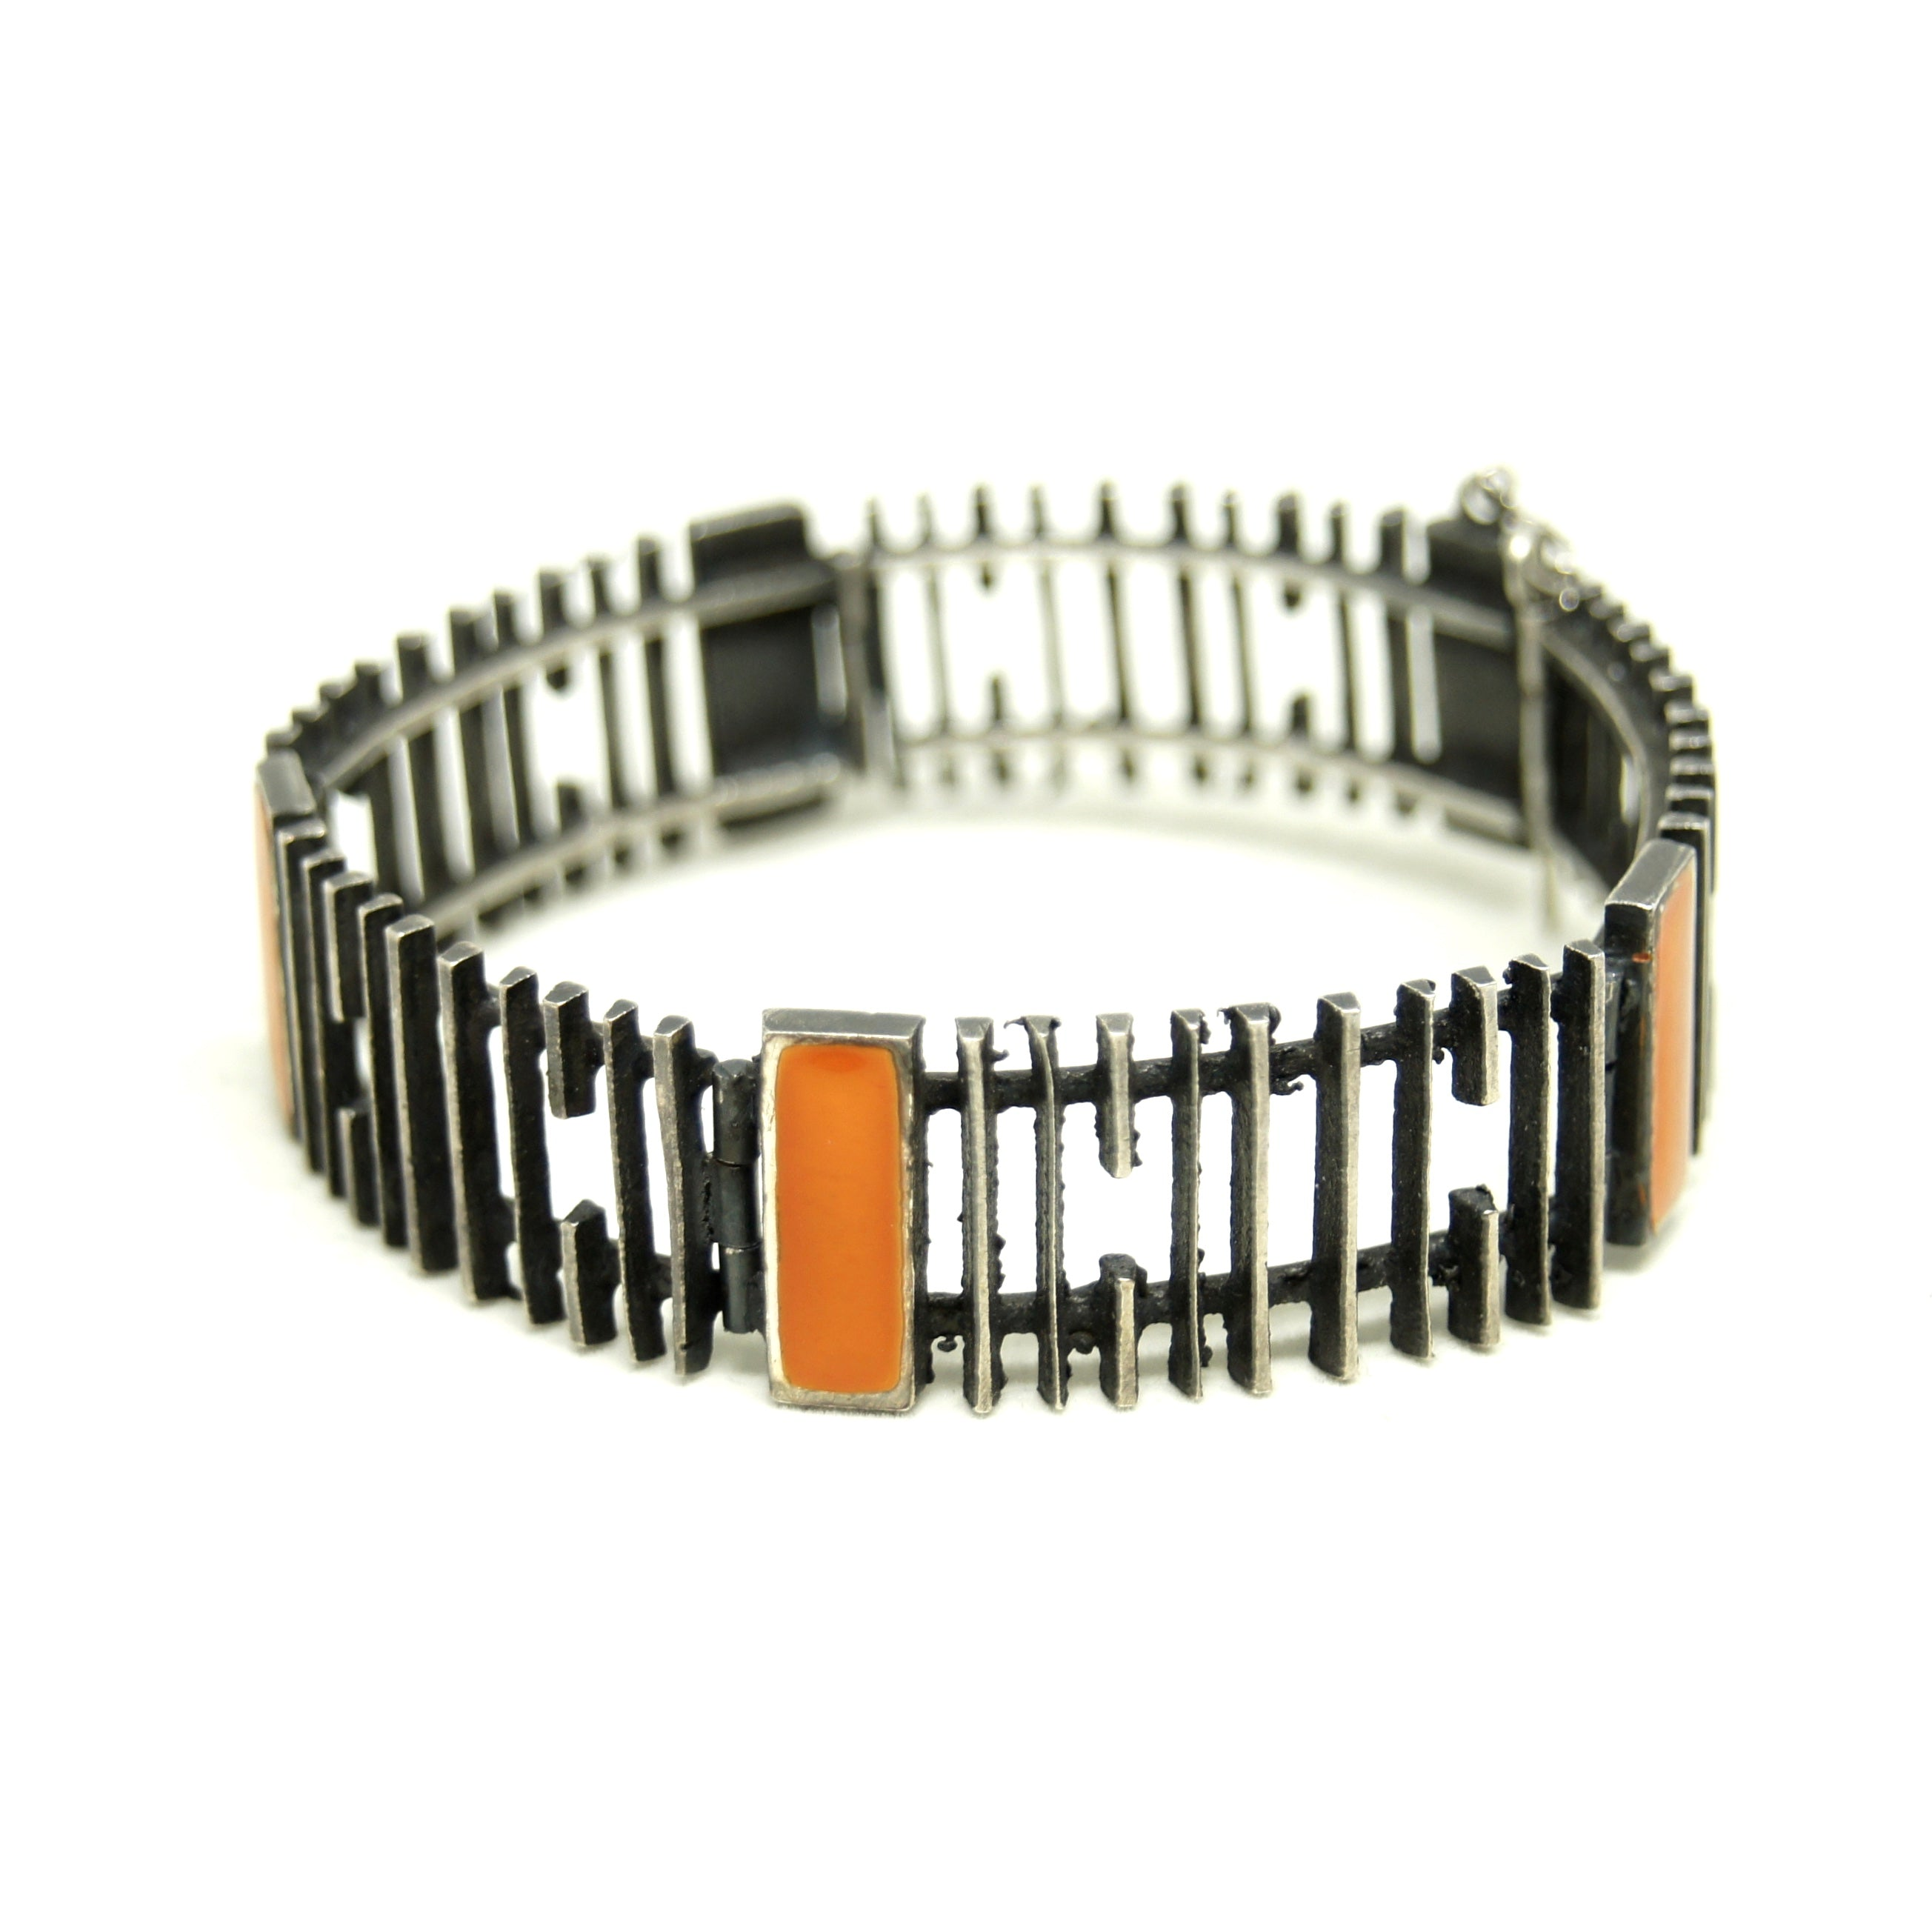 Modernist Bracelet - Orange Resin Enamel